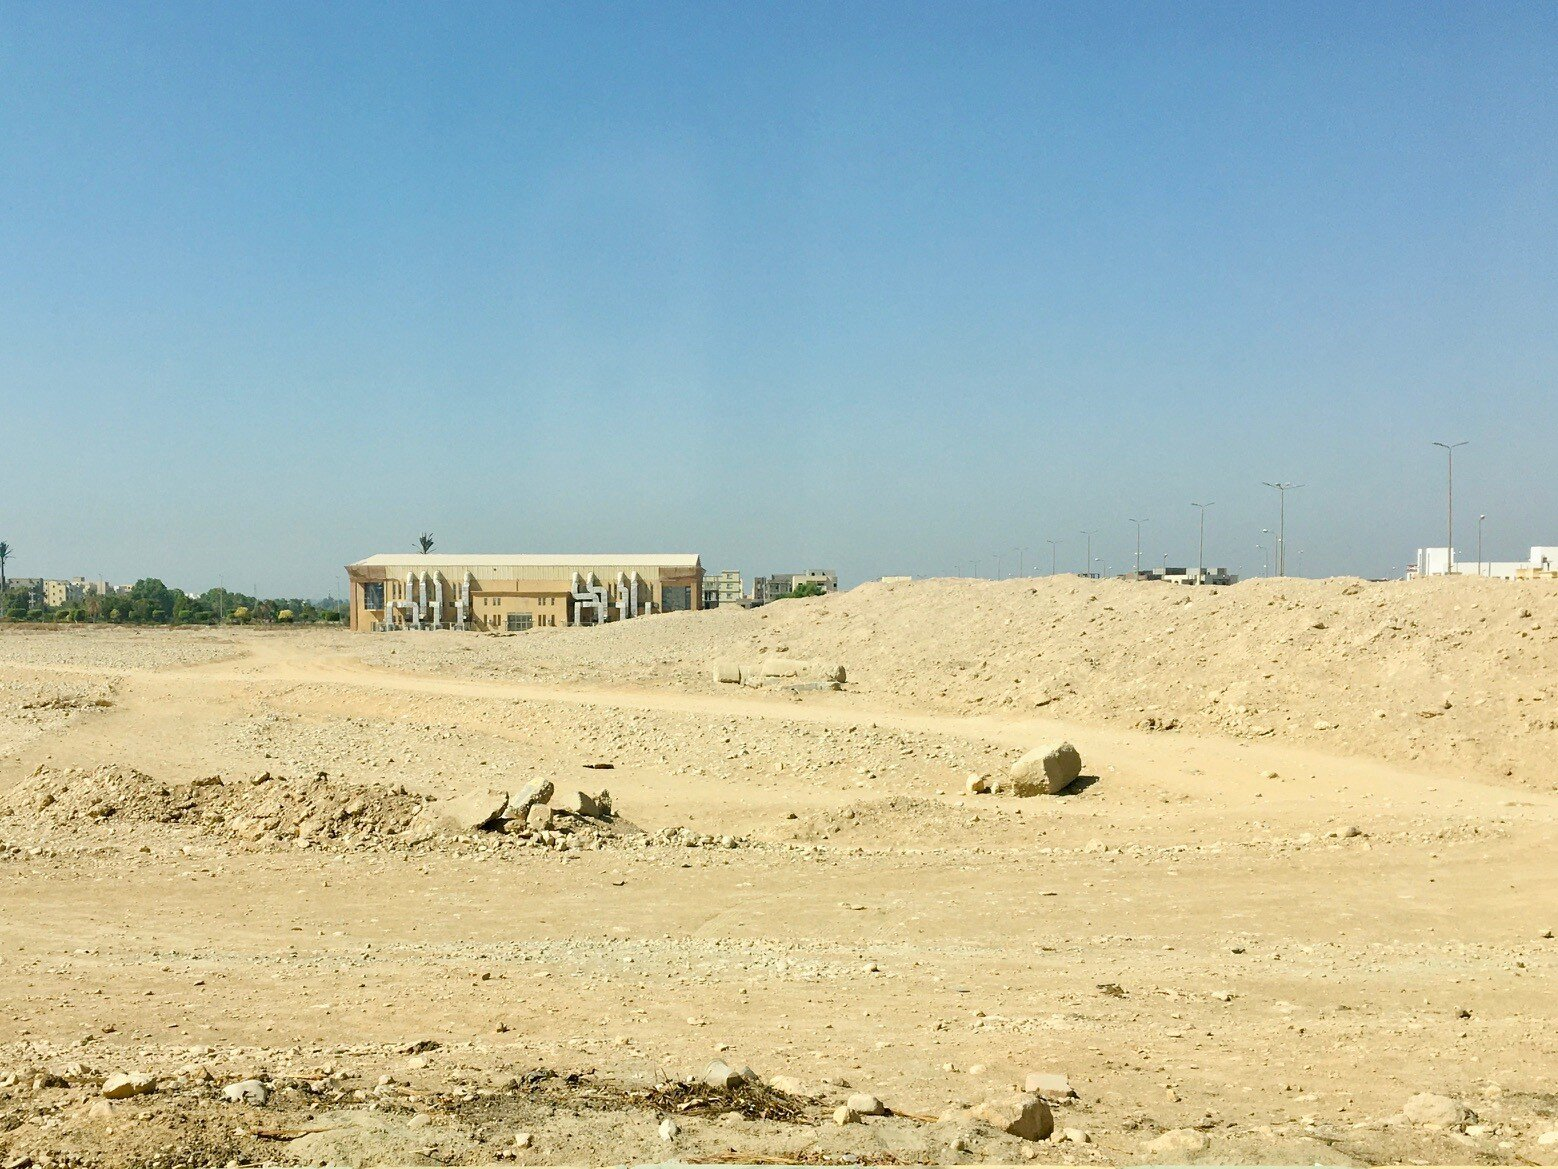 A new city being built outside of Luxor has made space for a new Presbyterian Church to take form—and, with God's help, make a new impact for the Gospel in this historic part of Egypt